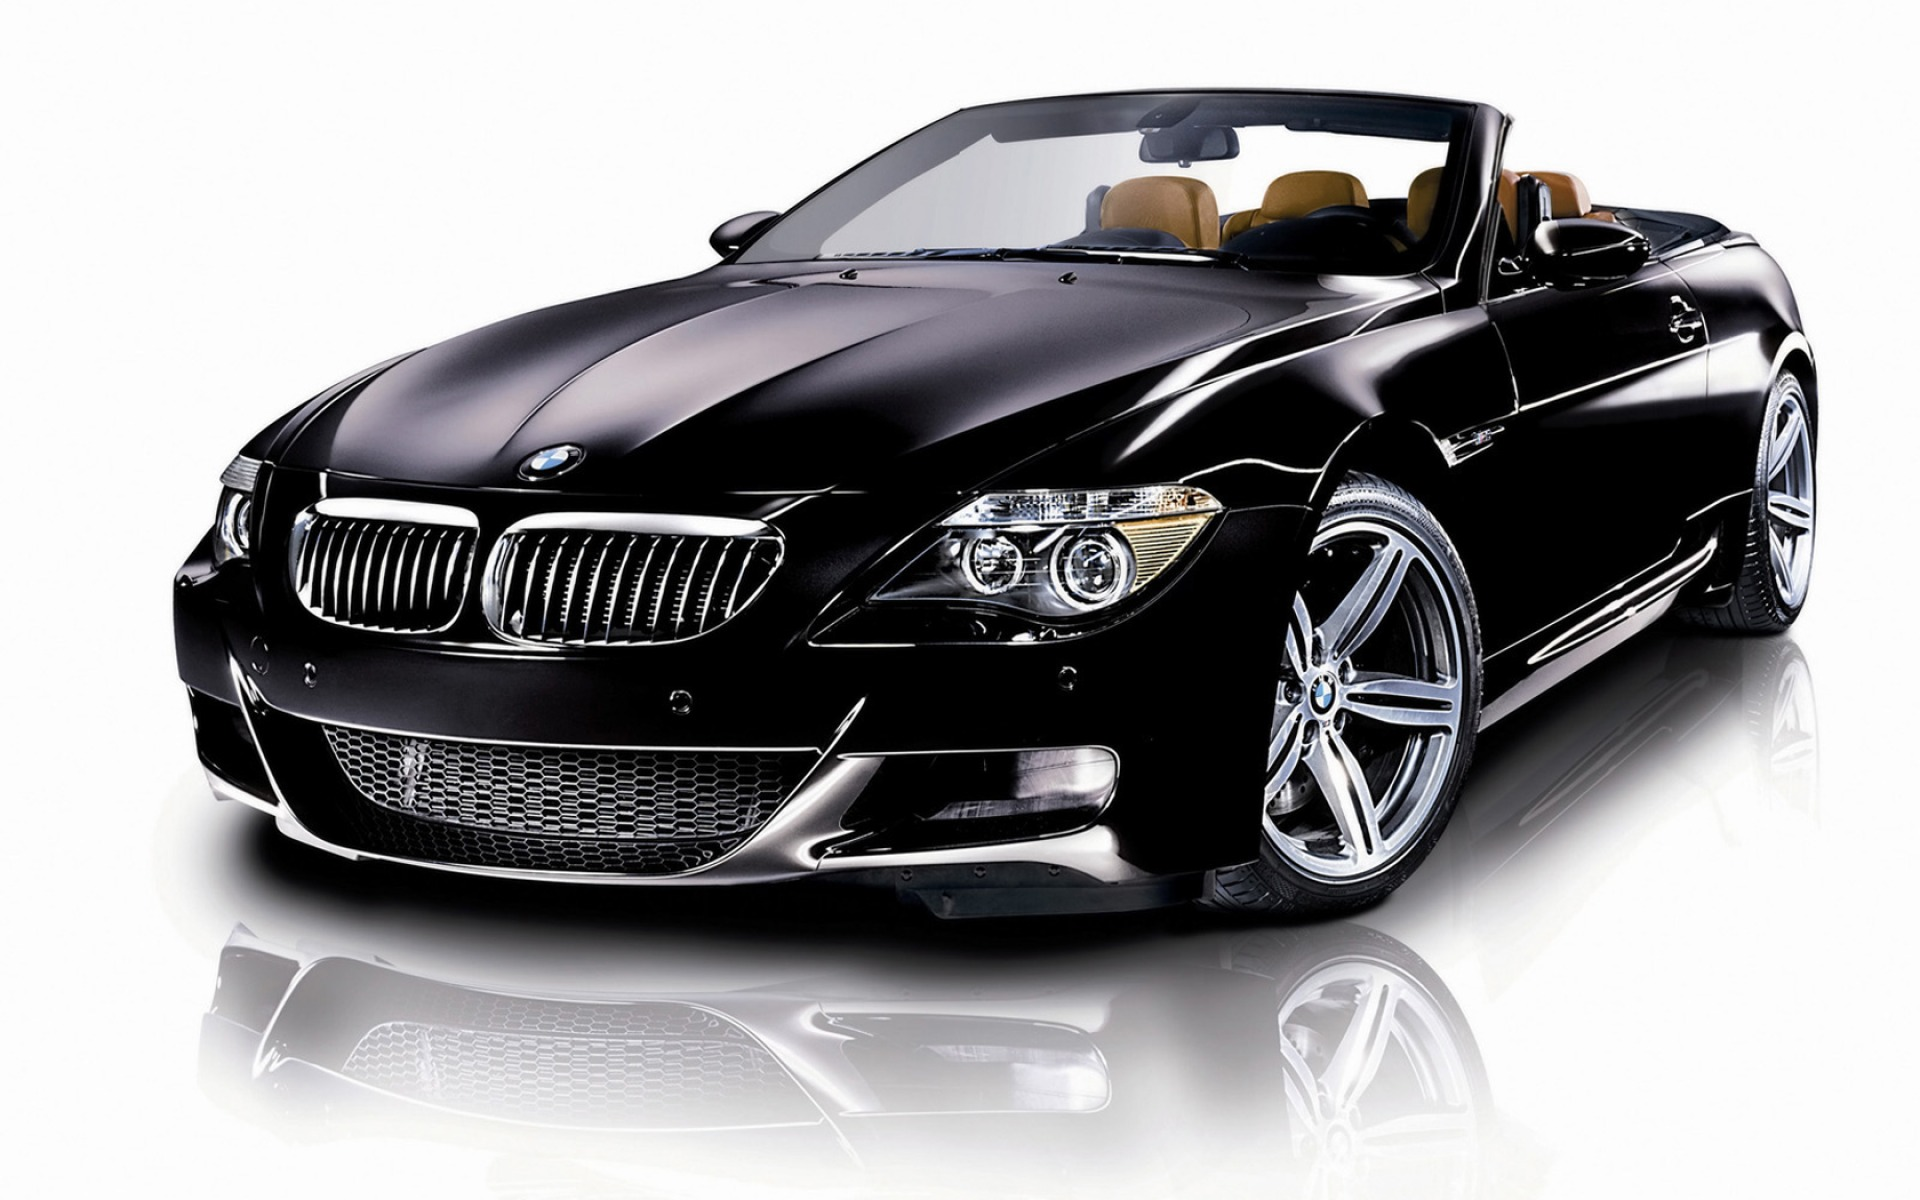 Ultrablogus  Outstanding Bmw Car Wallpaper Wallpapers For Free Download About   With Gorgeous Bmw M Convertible Wallpaper Bmw Cars With Appealing  Boss  Interior Also Honda Prelude  Interior In Addition Best Luxury Car Interior And  Bmw Li Interior As Well As  Camaro Interior Accessories Additionally  Ford Mustang Interior From Allfreedownloadcom With Ultrablogus  Gorgeous Bmw Car Wallpaper Wallpapers For Free Download About   With Appealing Bmw M Convertible Wallpaper Bmw Cars And Outstanding  Boss  Interior Also Honda Prelude  Interior In Addition Best Luxury Car Interior From Allfreedownloadcom